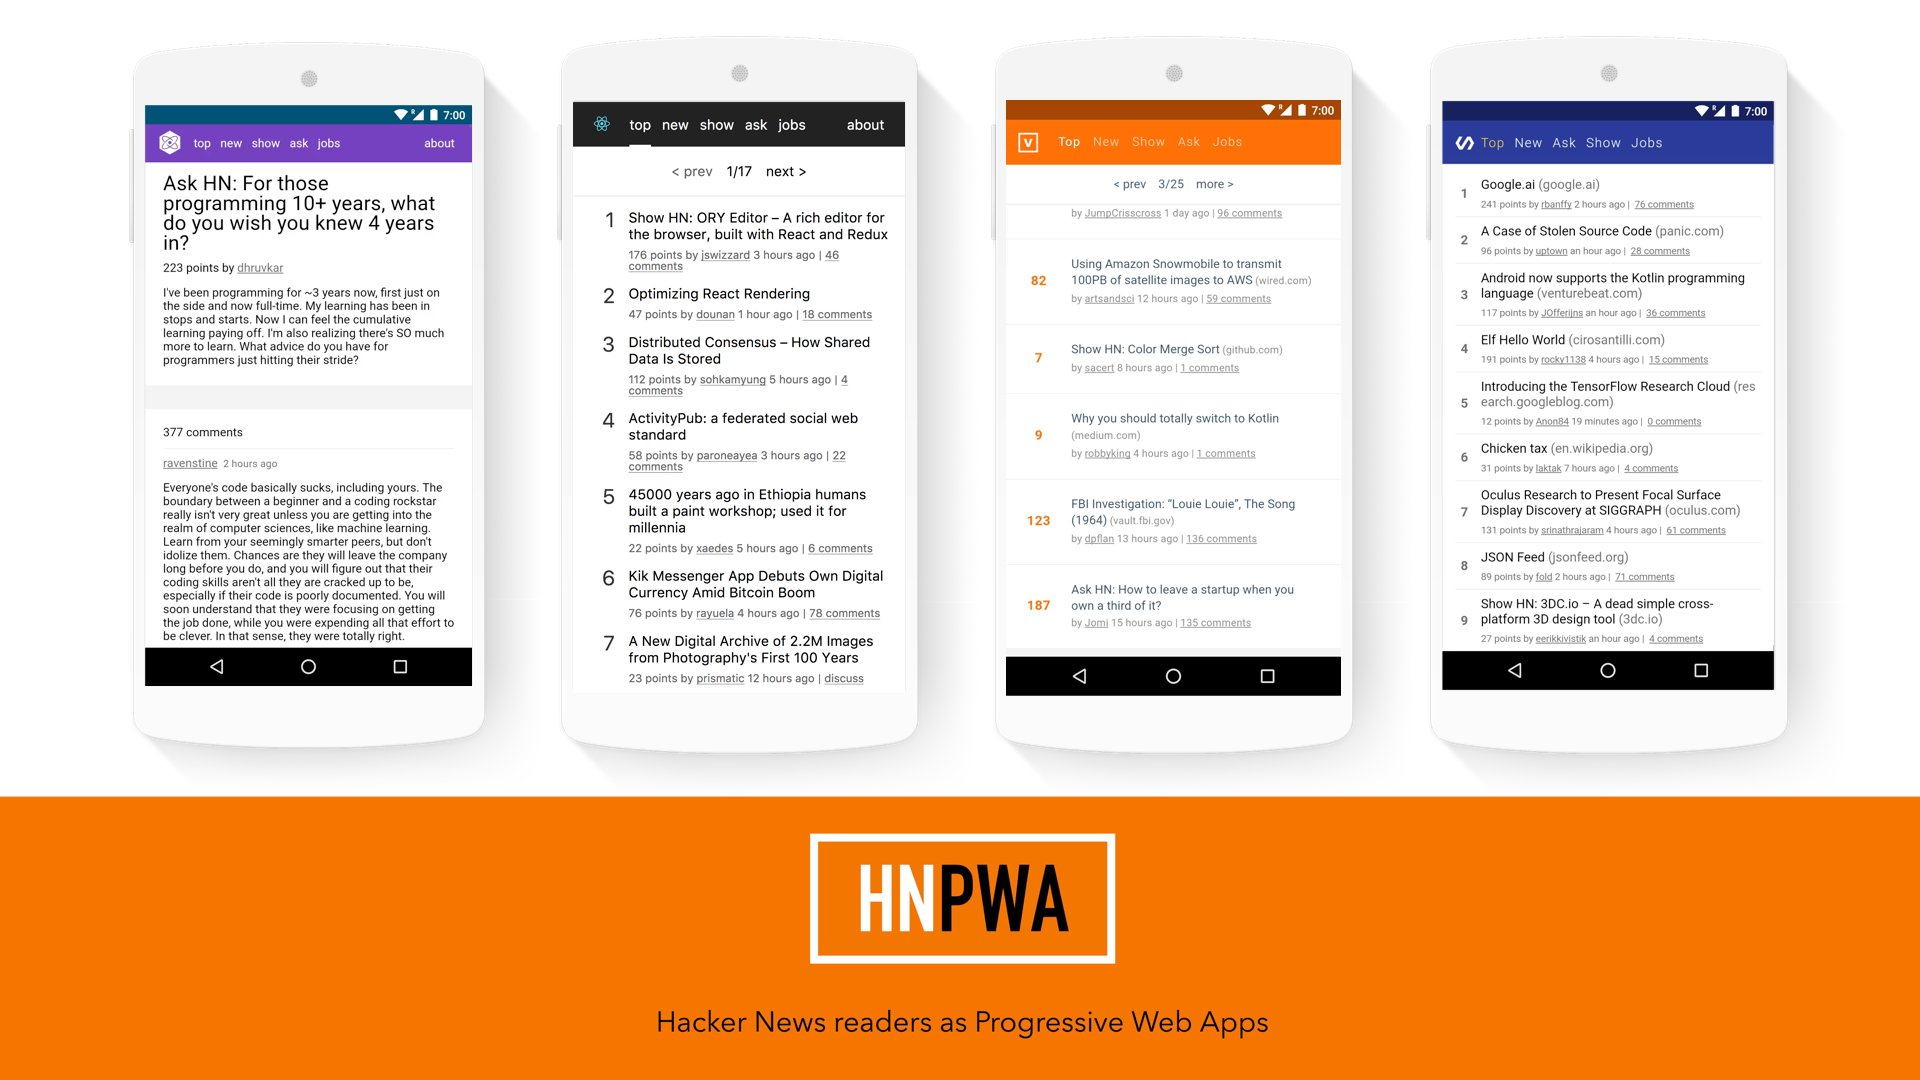 HN PWA - Hacker News readers as Progressive Web Apps